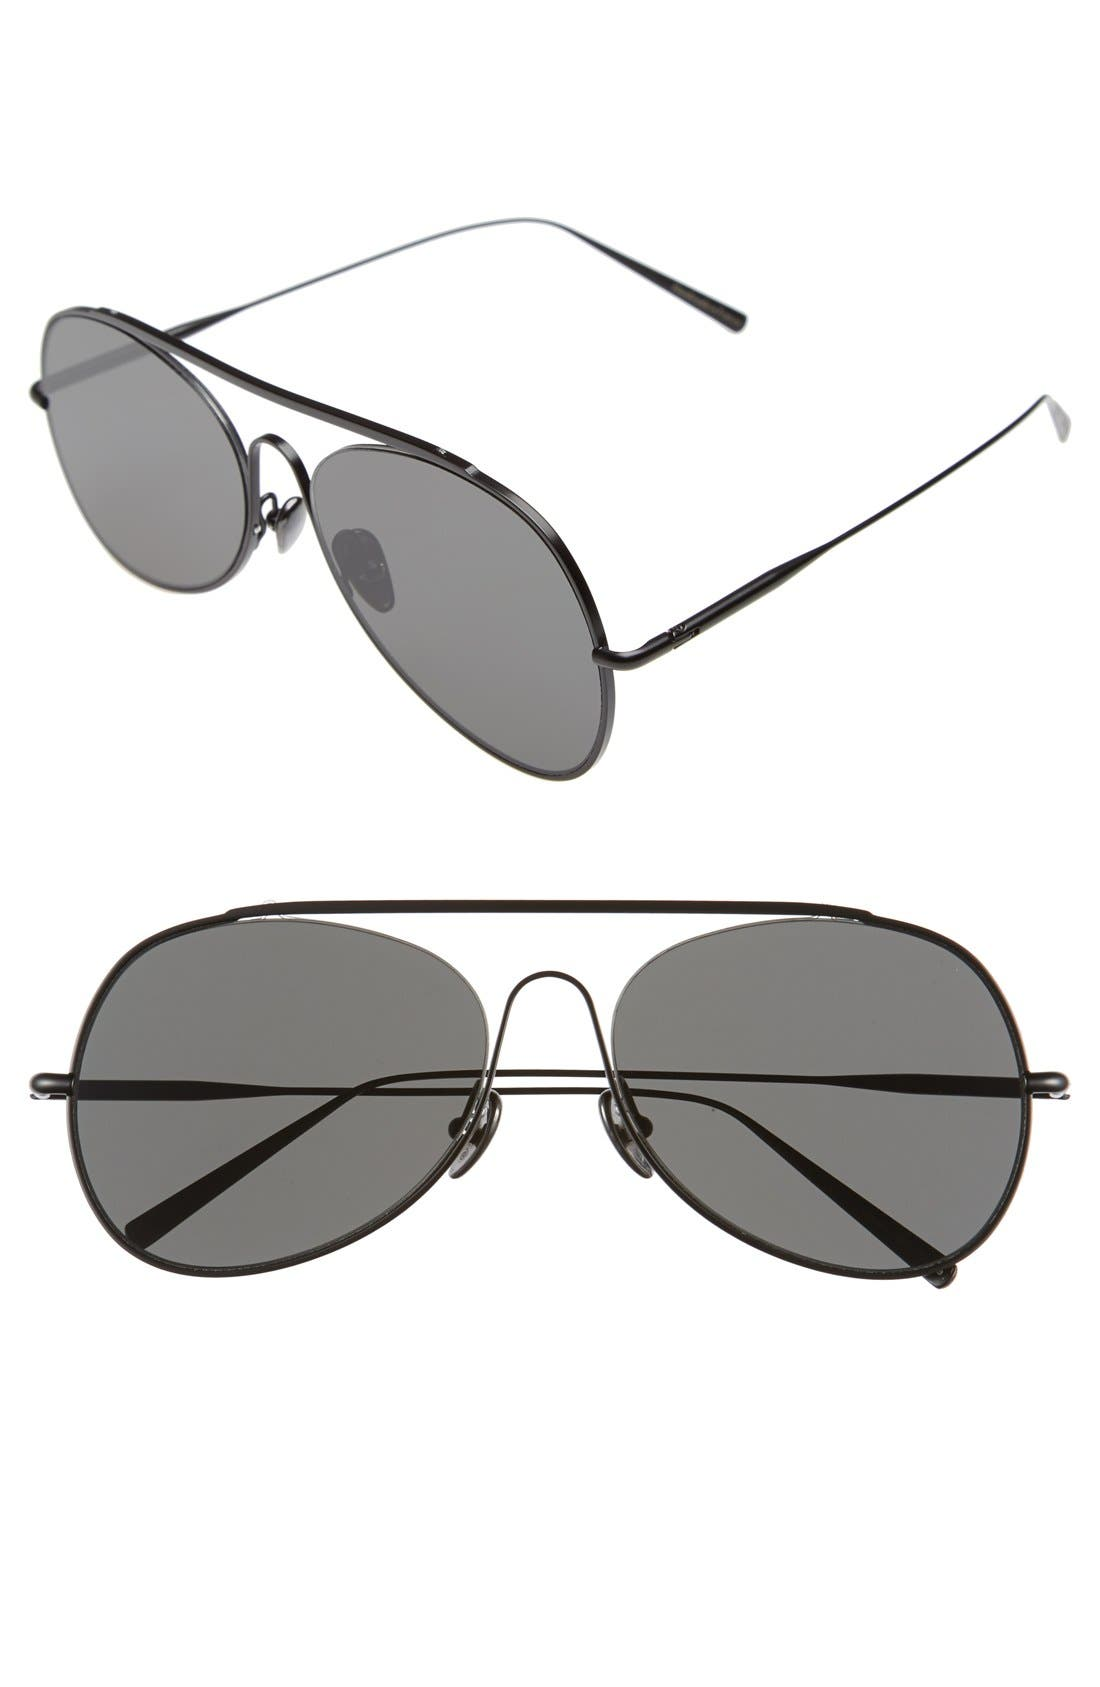 Acne Studios Large Spitfire 57mm Aviator Sunglasses